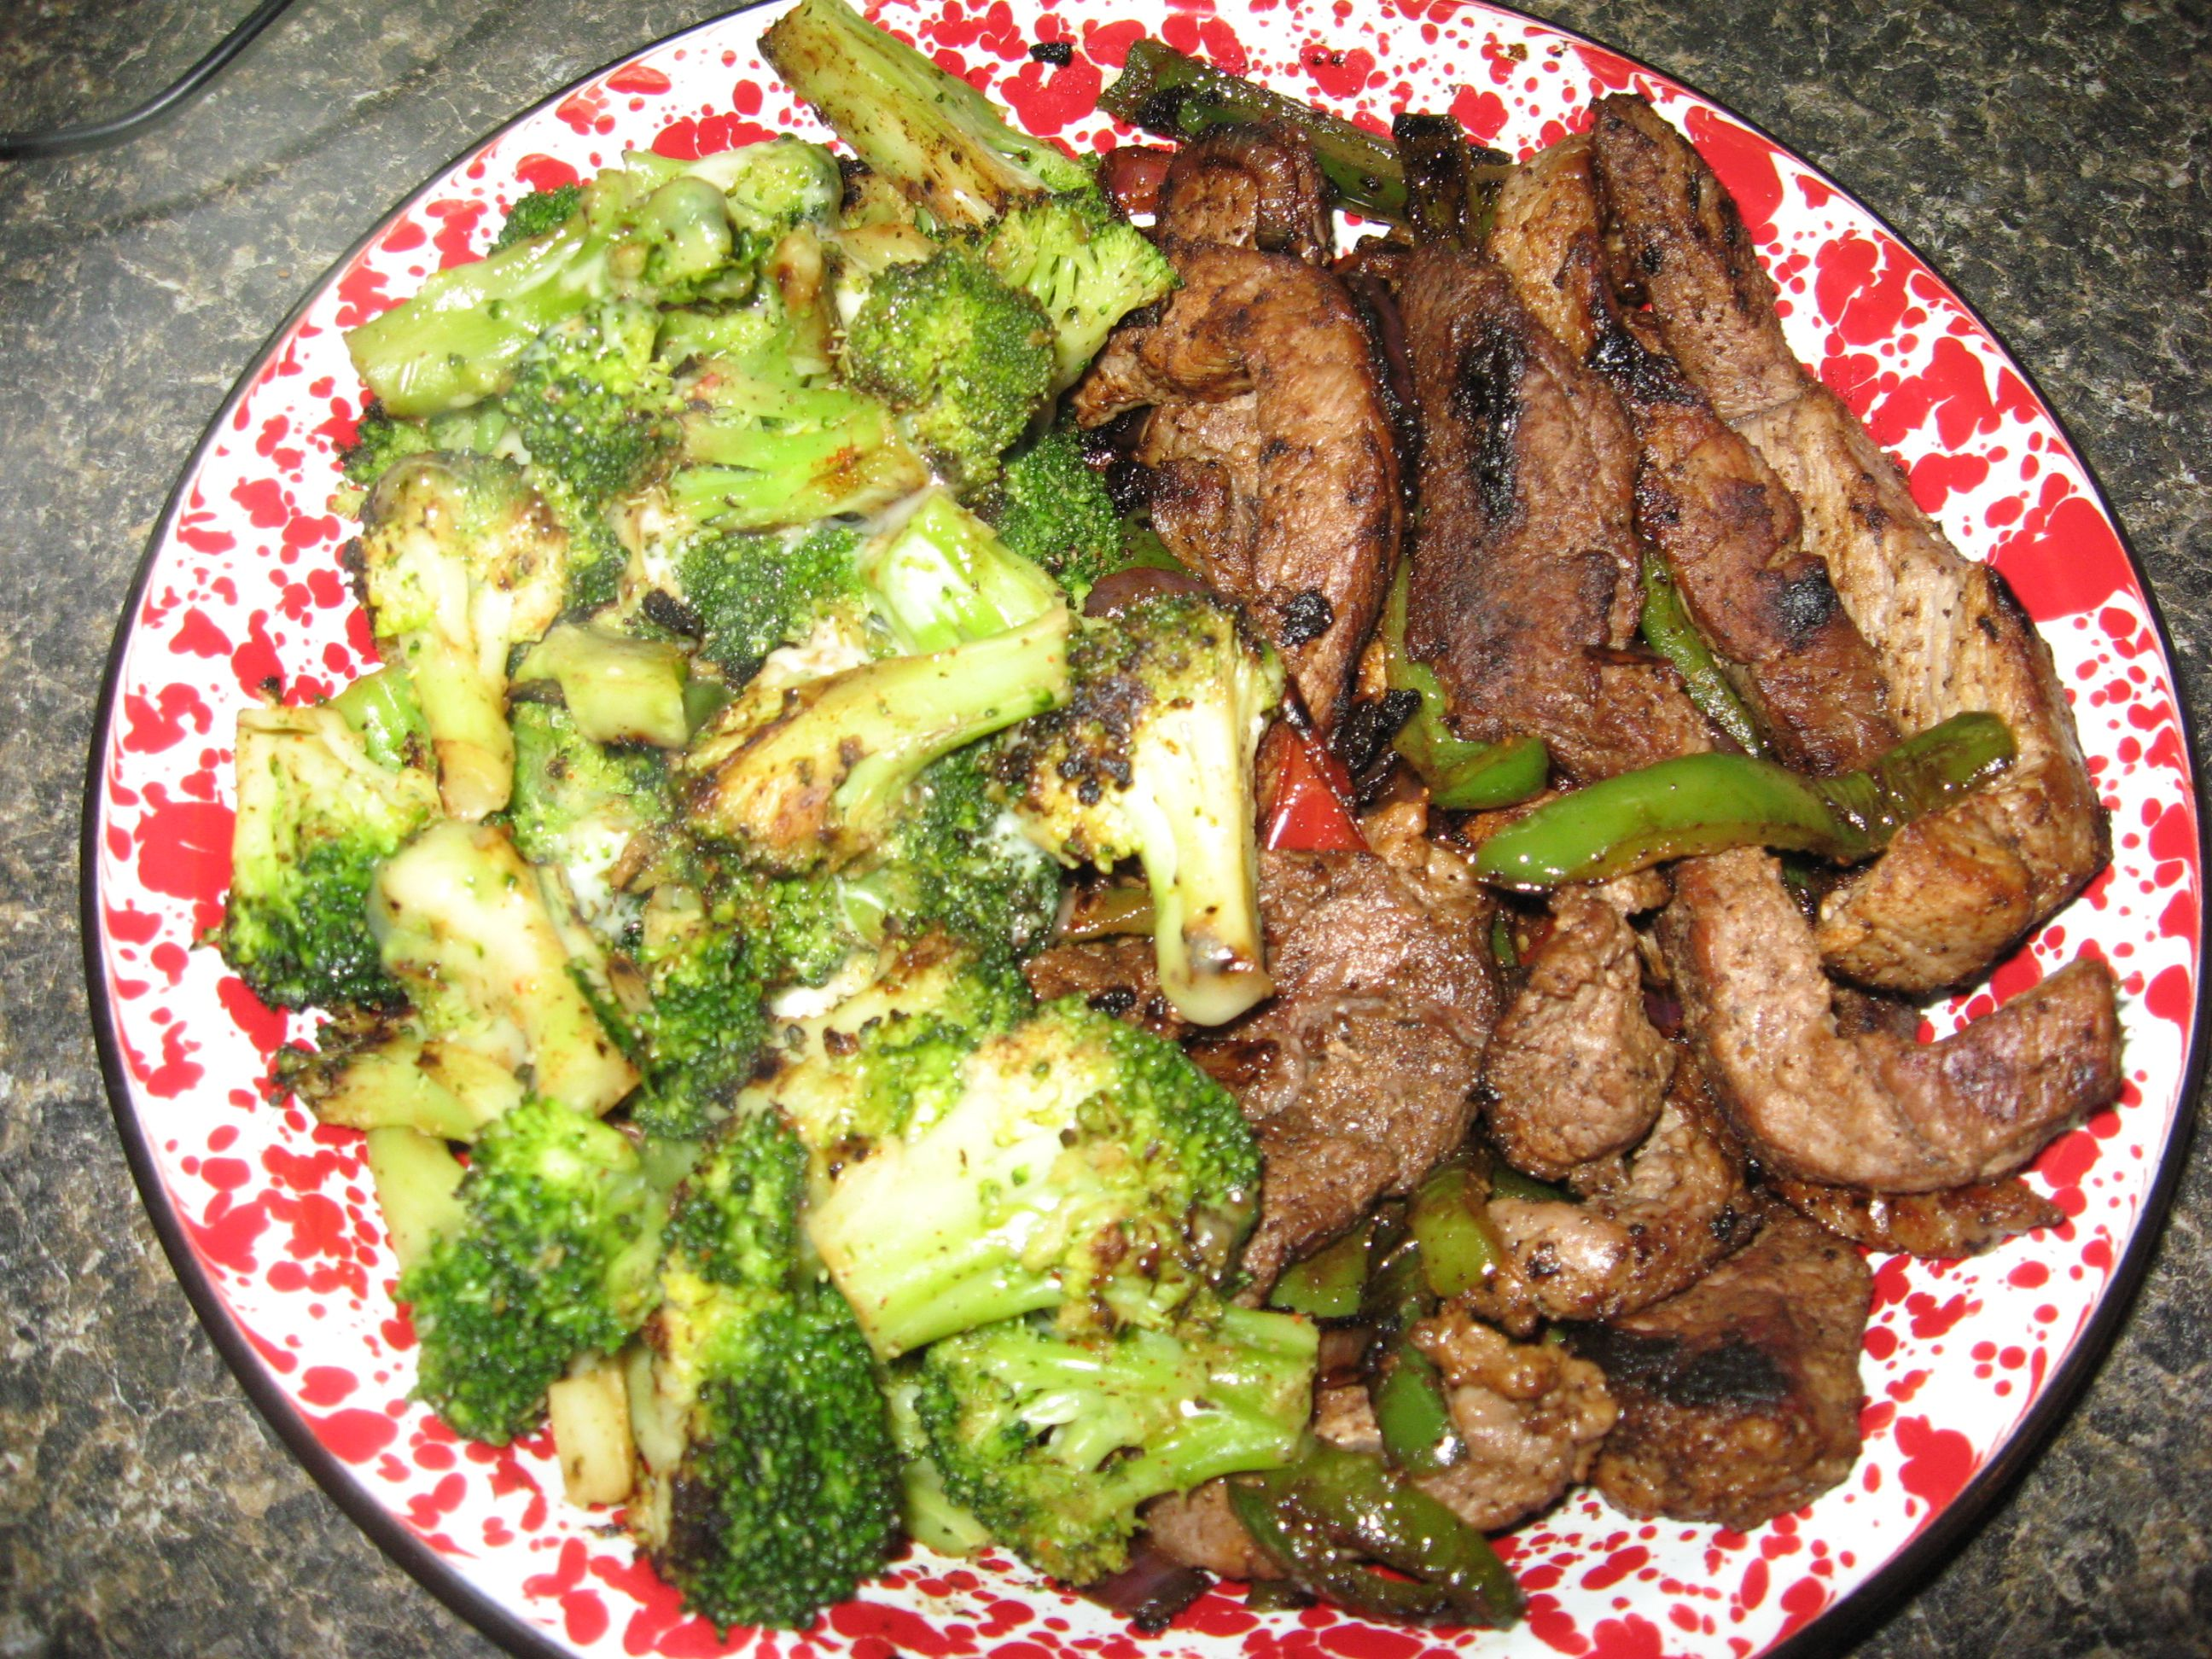 Diabetic recipes mexican steak and broccoli diabetic recipes diabetic recipes mexican steak and broccoli forumfinder Images